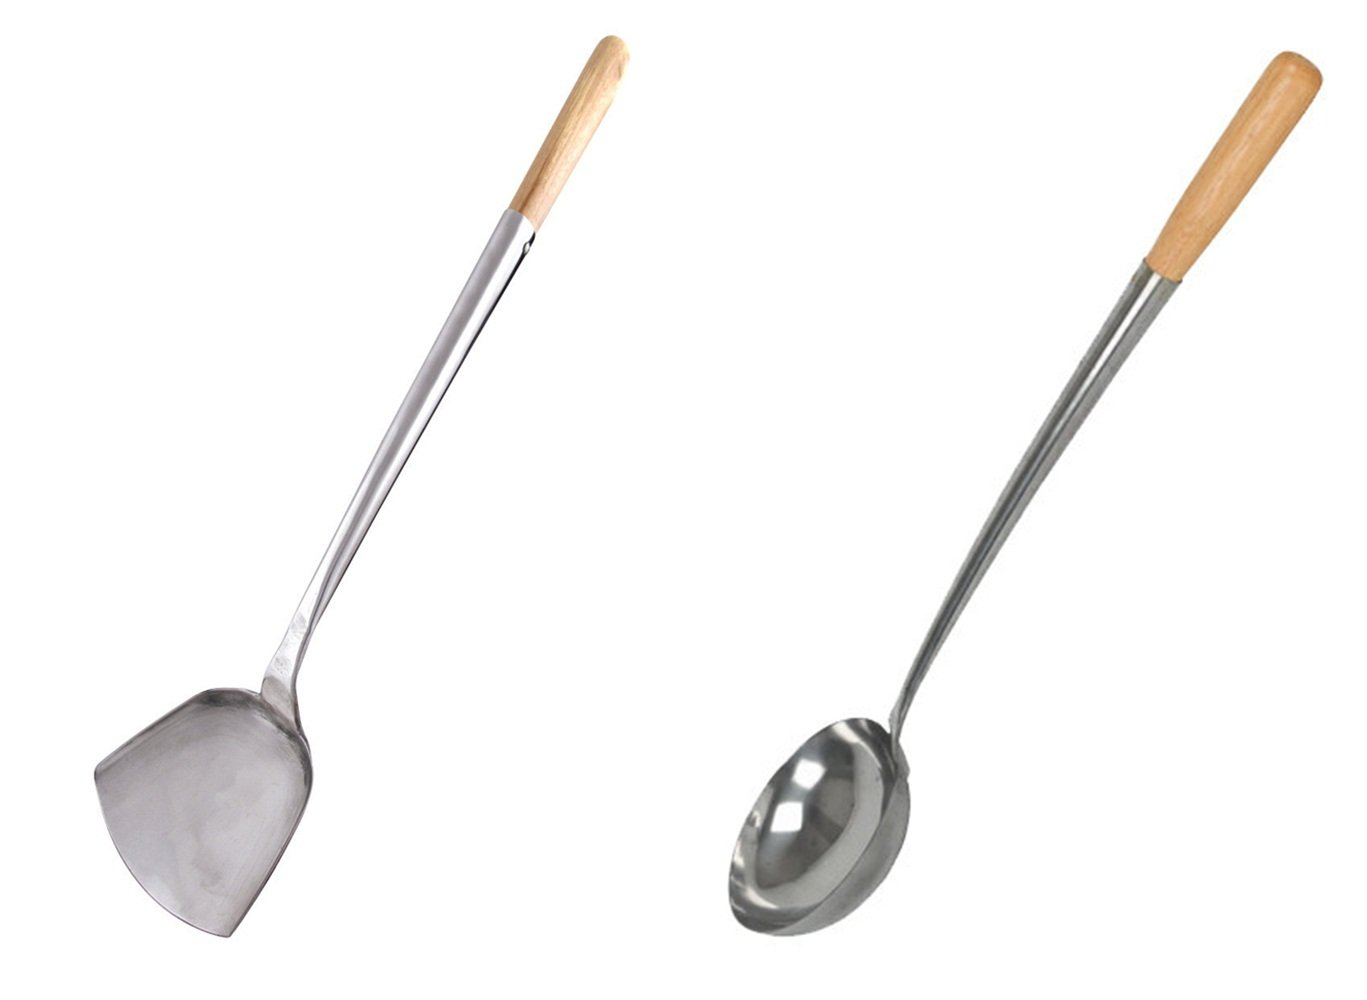 17 l. x 4.25 Home Use Stainless Hand-Tooled Chuan & Hoak (Spatula & Ladle) Set by Garden-Outdoor